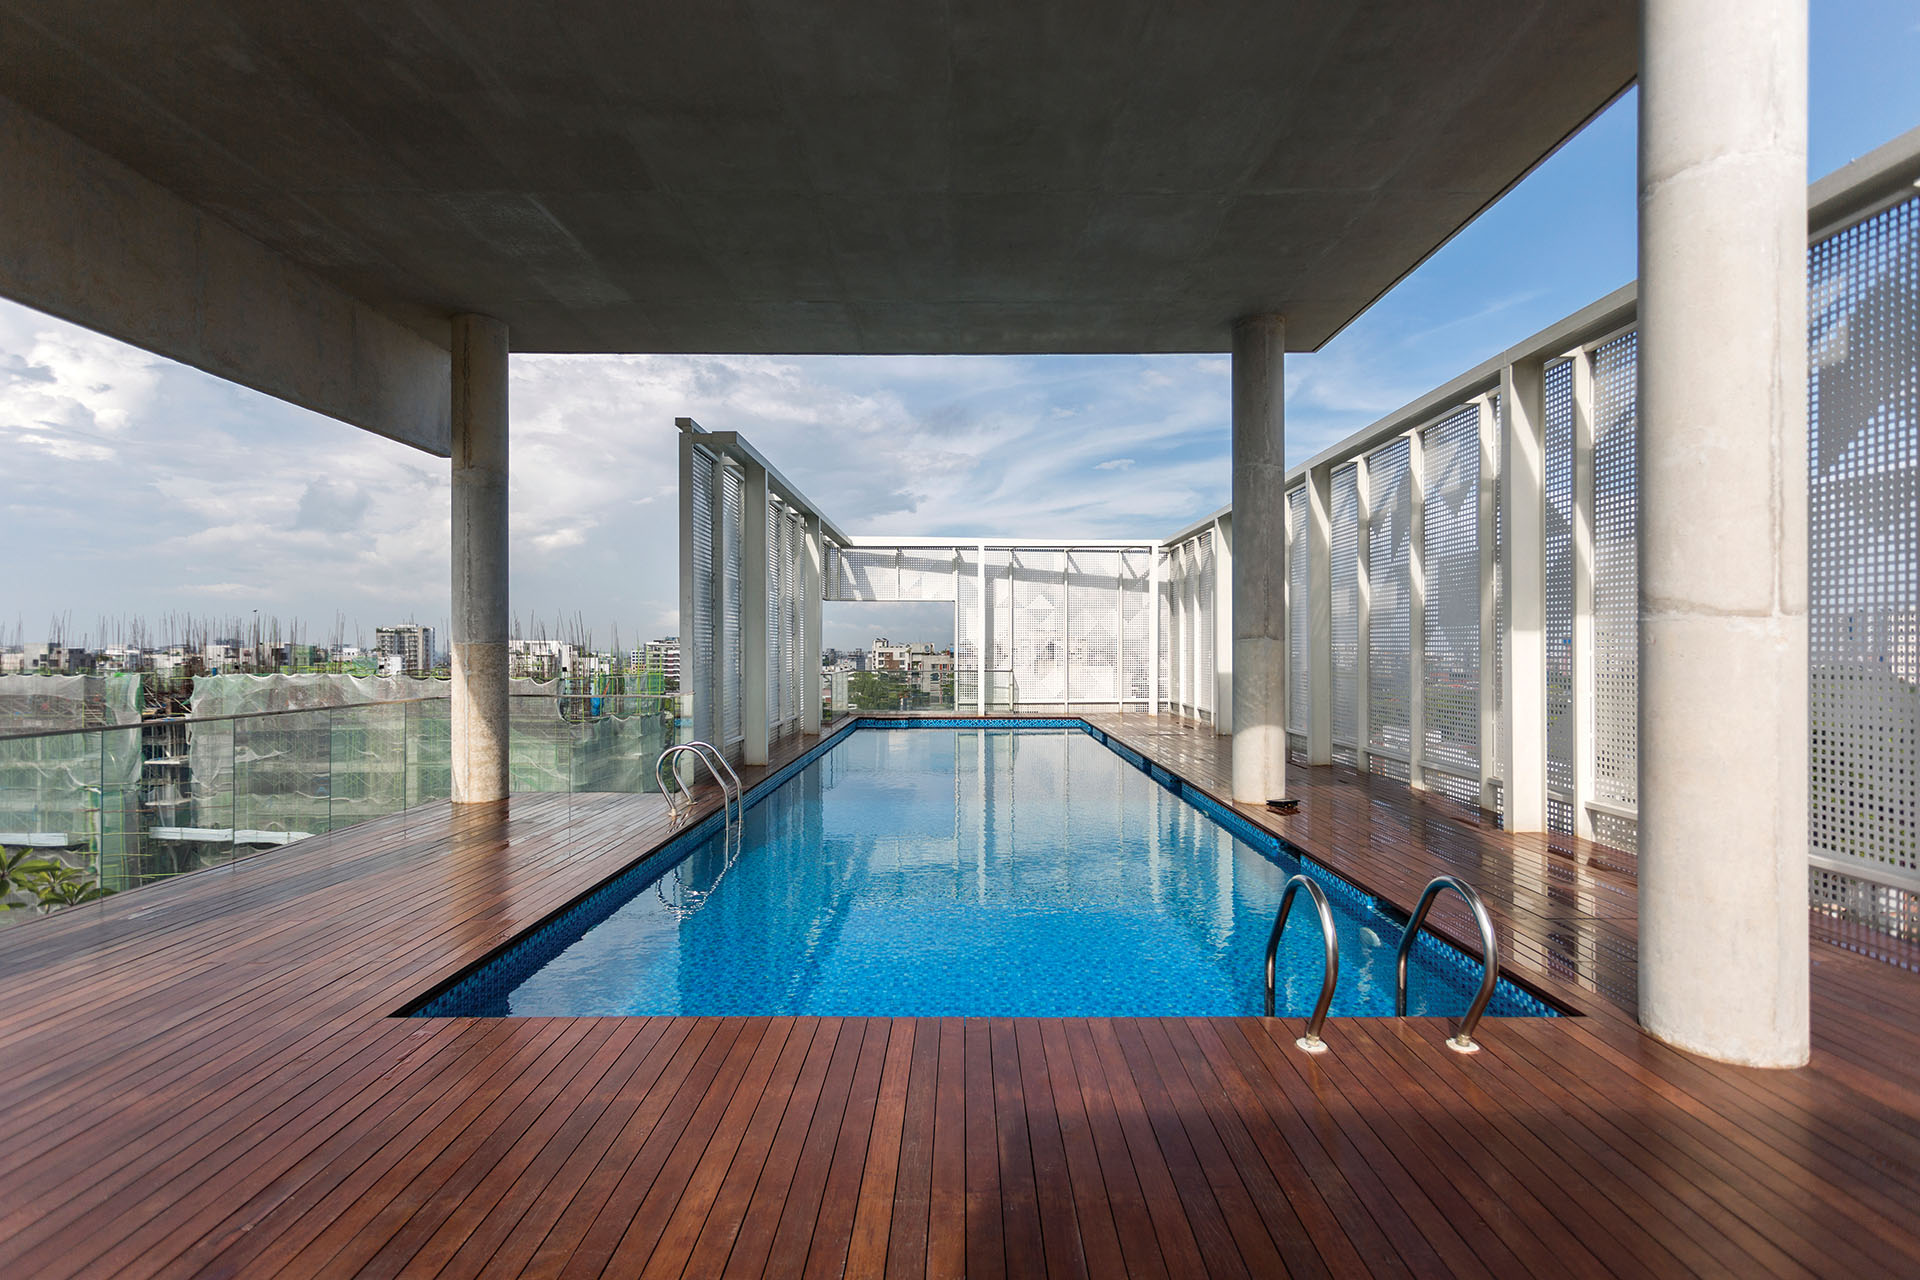 Swimming pool view © Studio Morphogenesis Ltd.